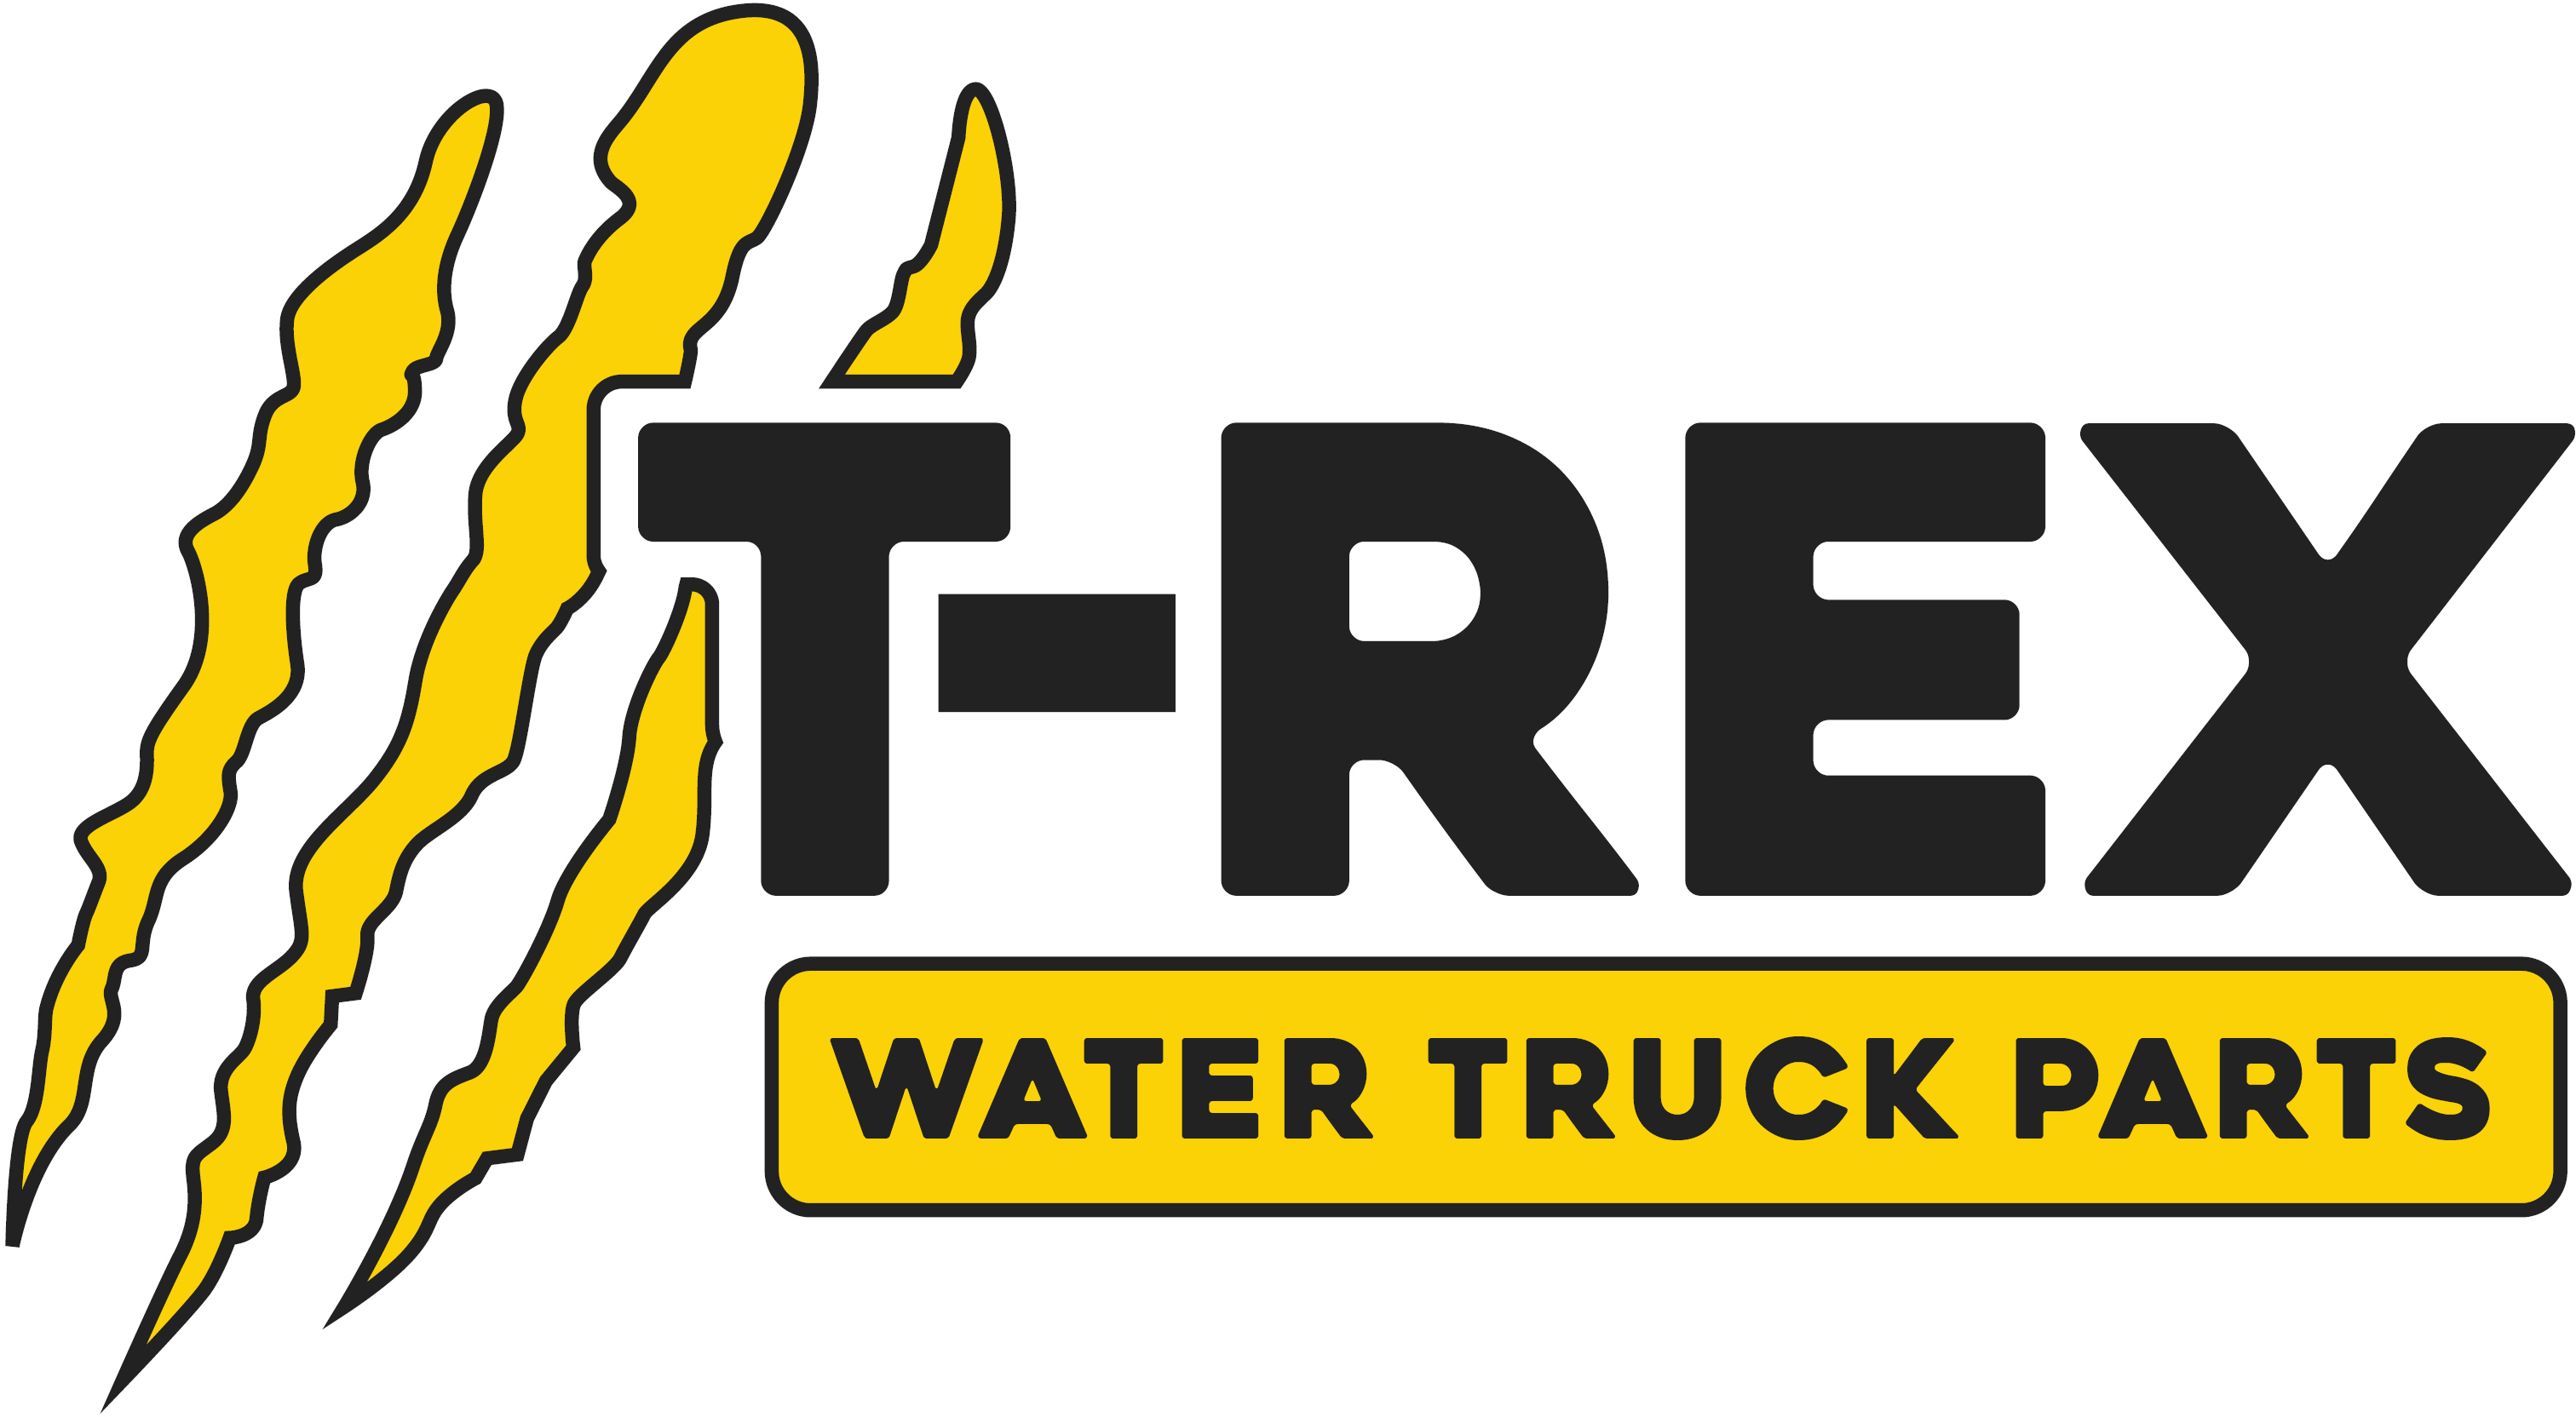 Read T-Rex Water Truck Parts Reviews